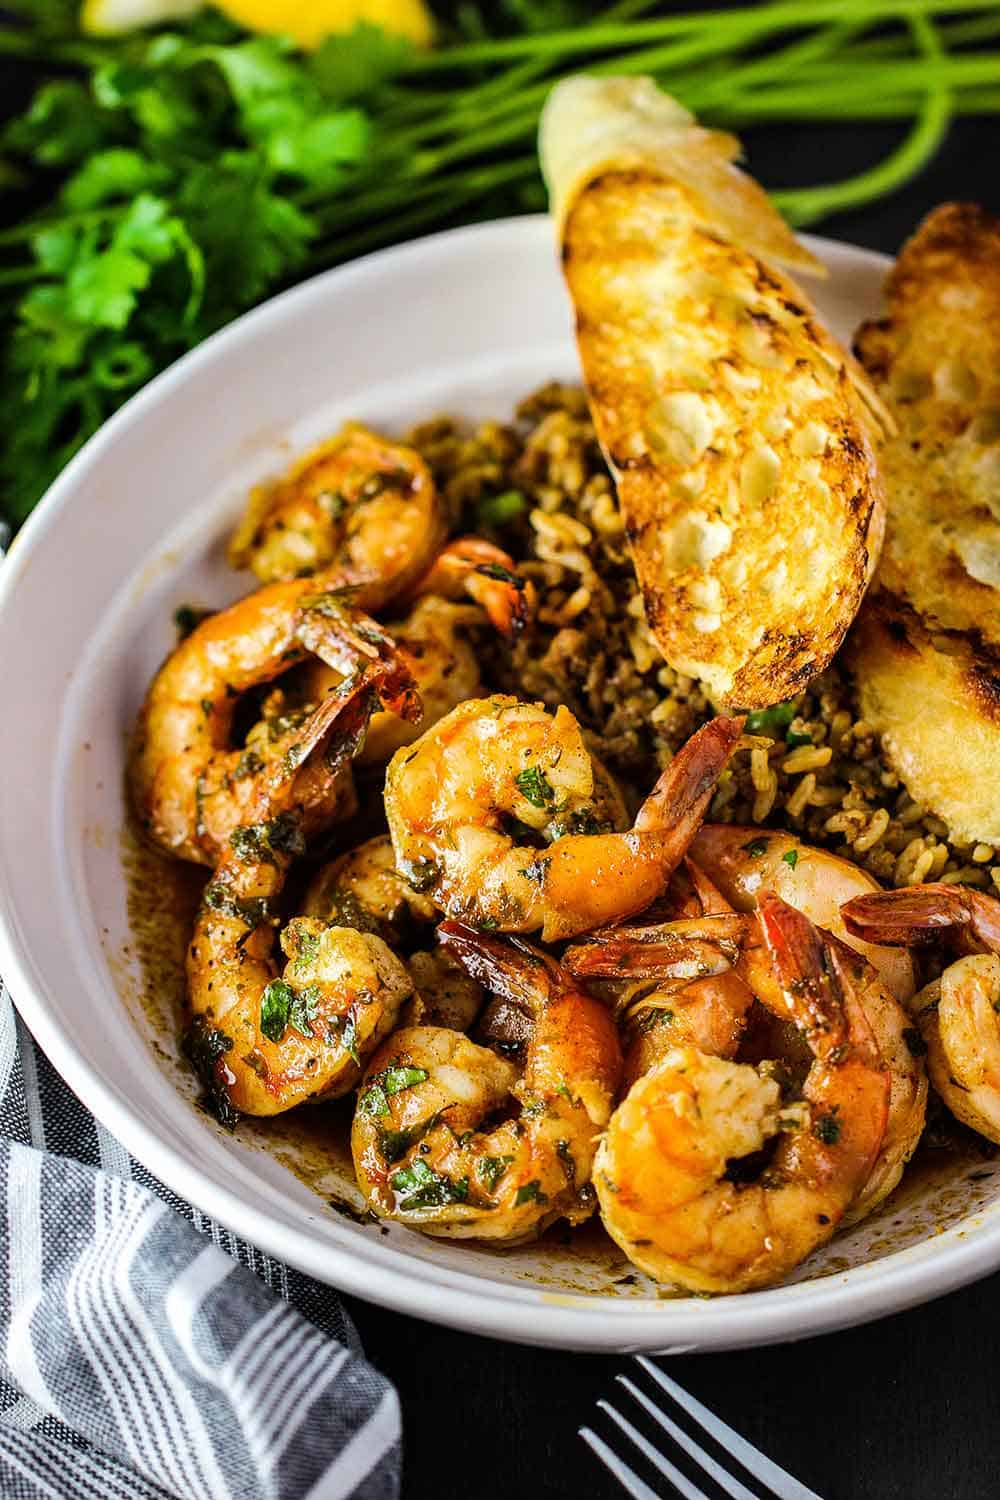 A white bowl containing Cajun bake shrimp, dirty rice and grilled bread.